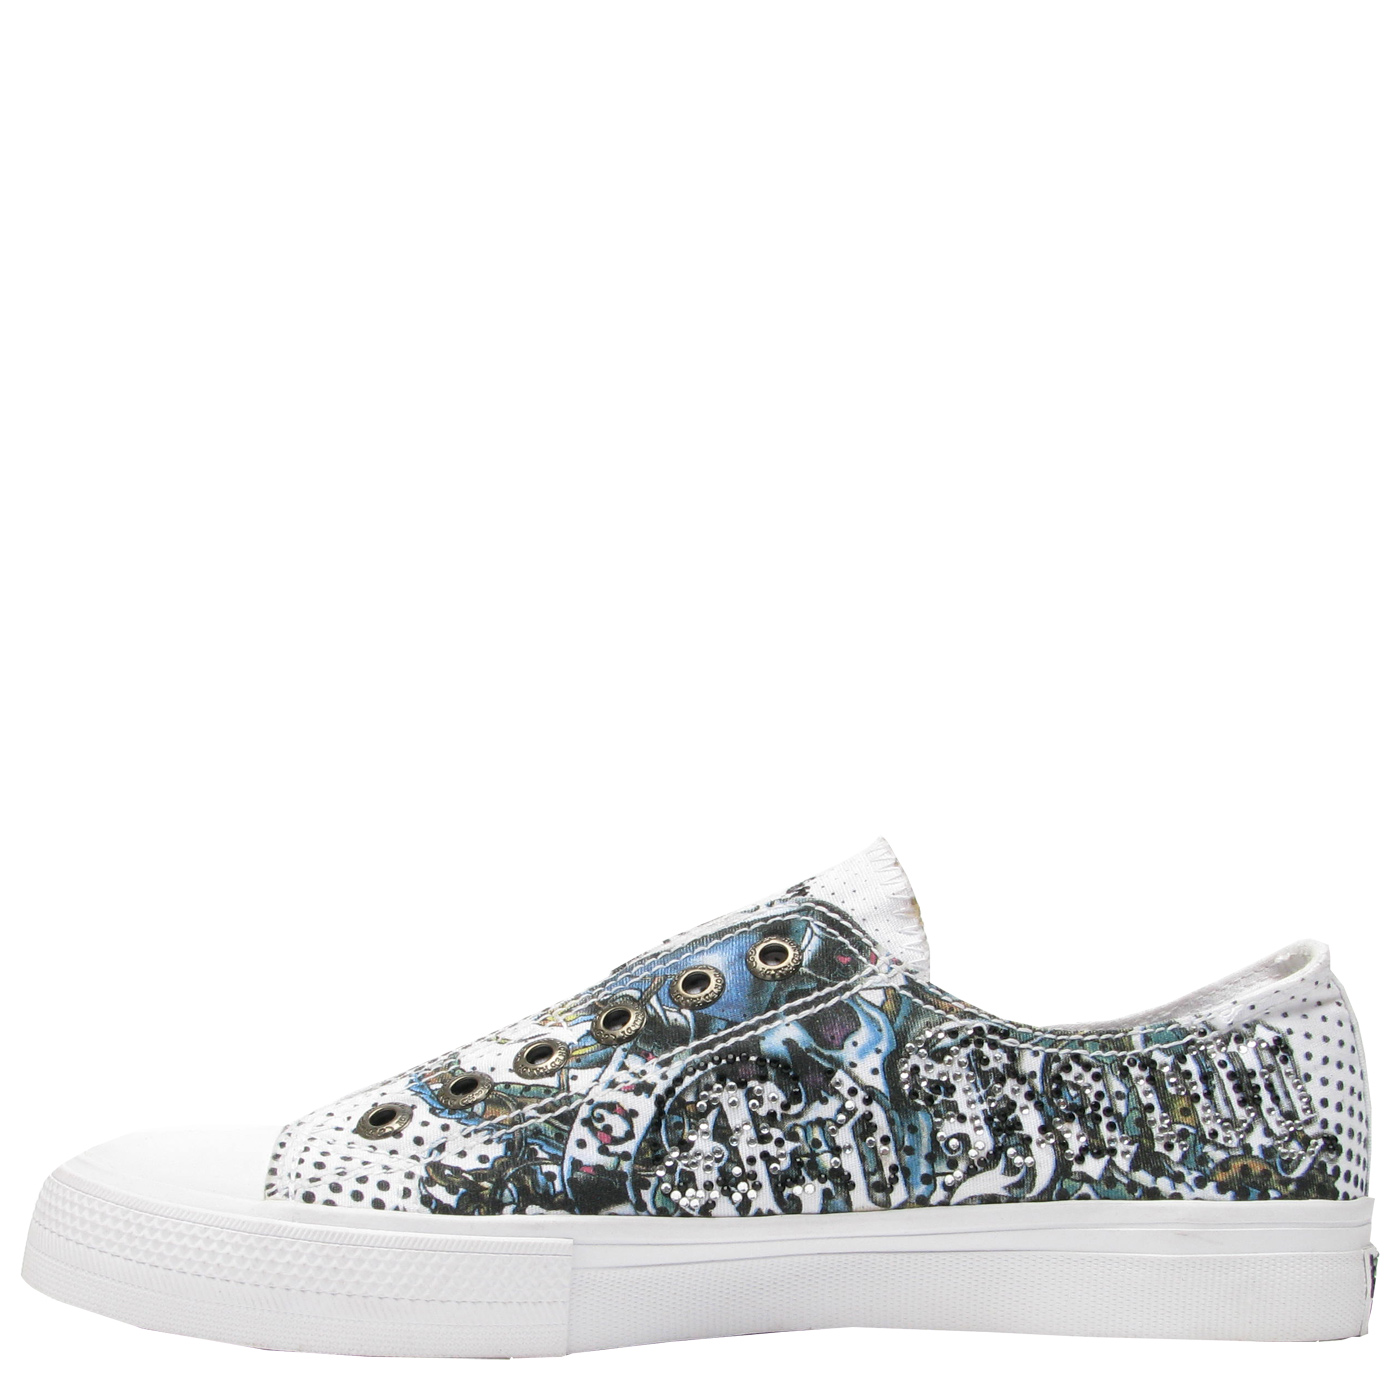 Ed Hardy Lowrise Rhinestone Shoe for Women - White